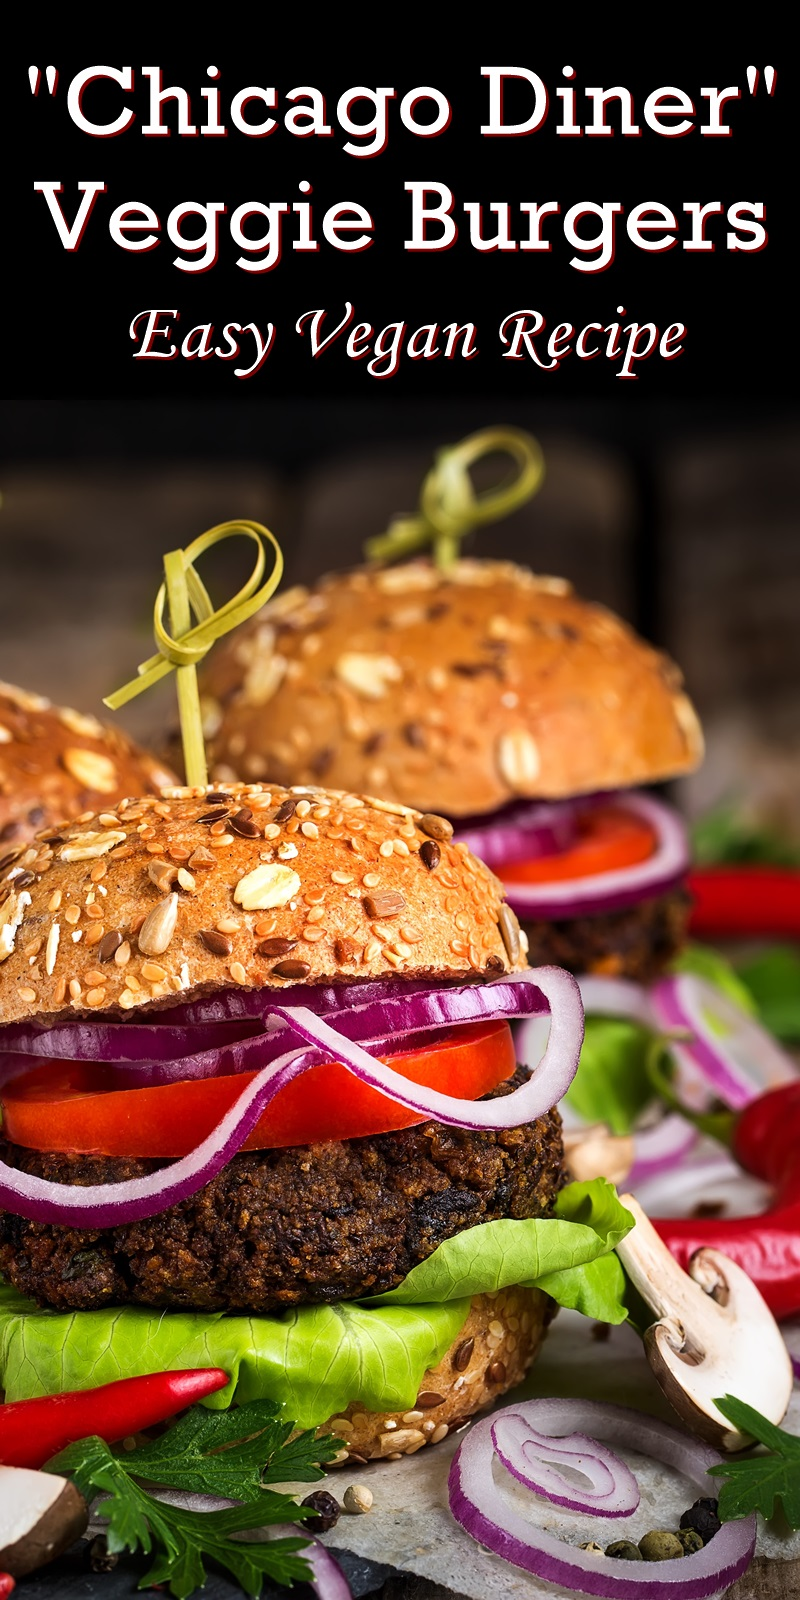 Chicago Diner Mushroom Burgers Recipe - a riff on the meaty veggie burgers from a popular vegan restaurant. Dairy-free, egg-free and vegan (no beans!)